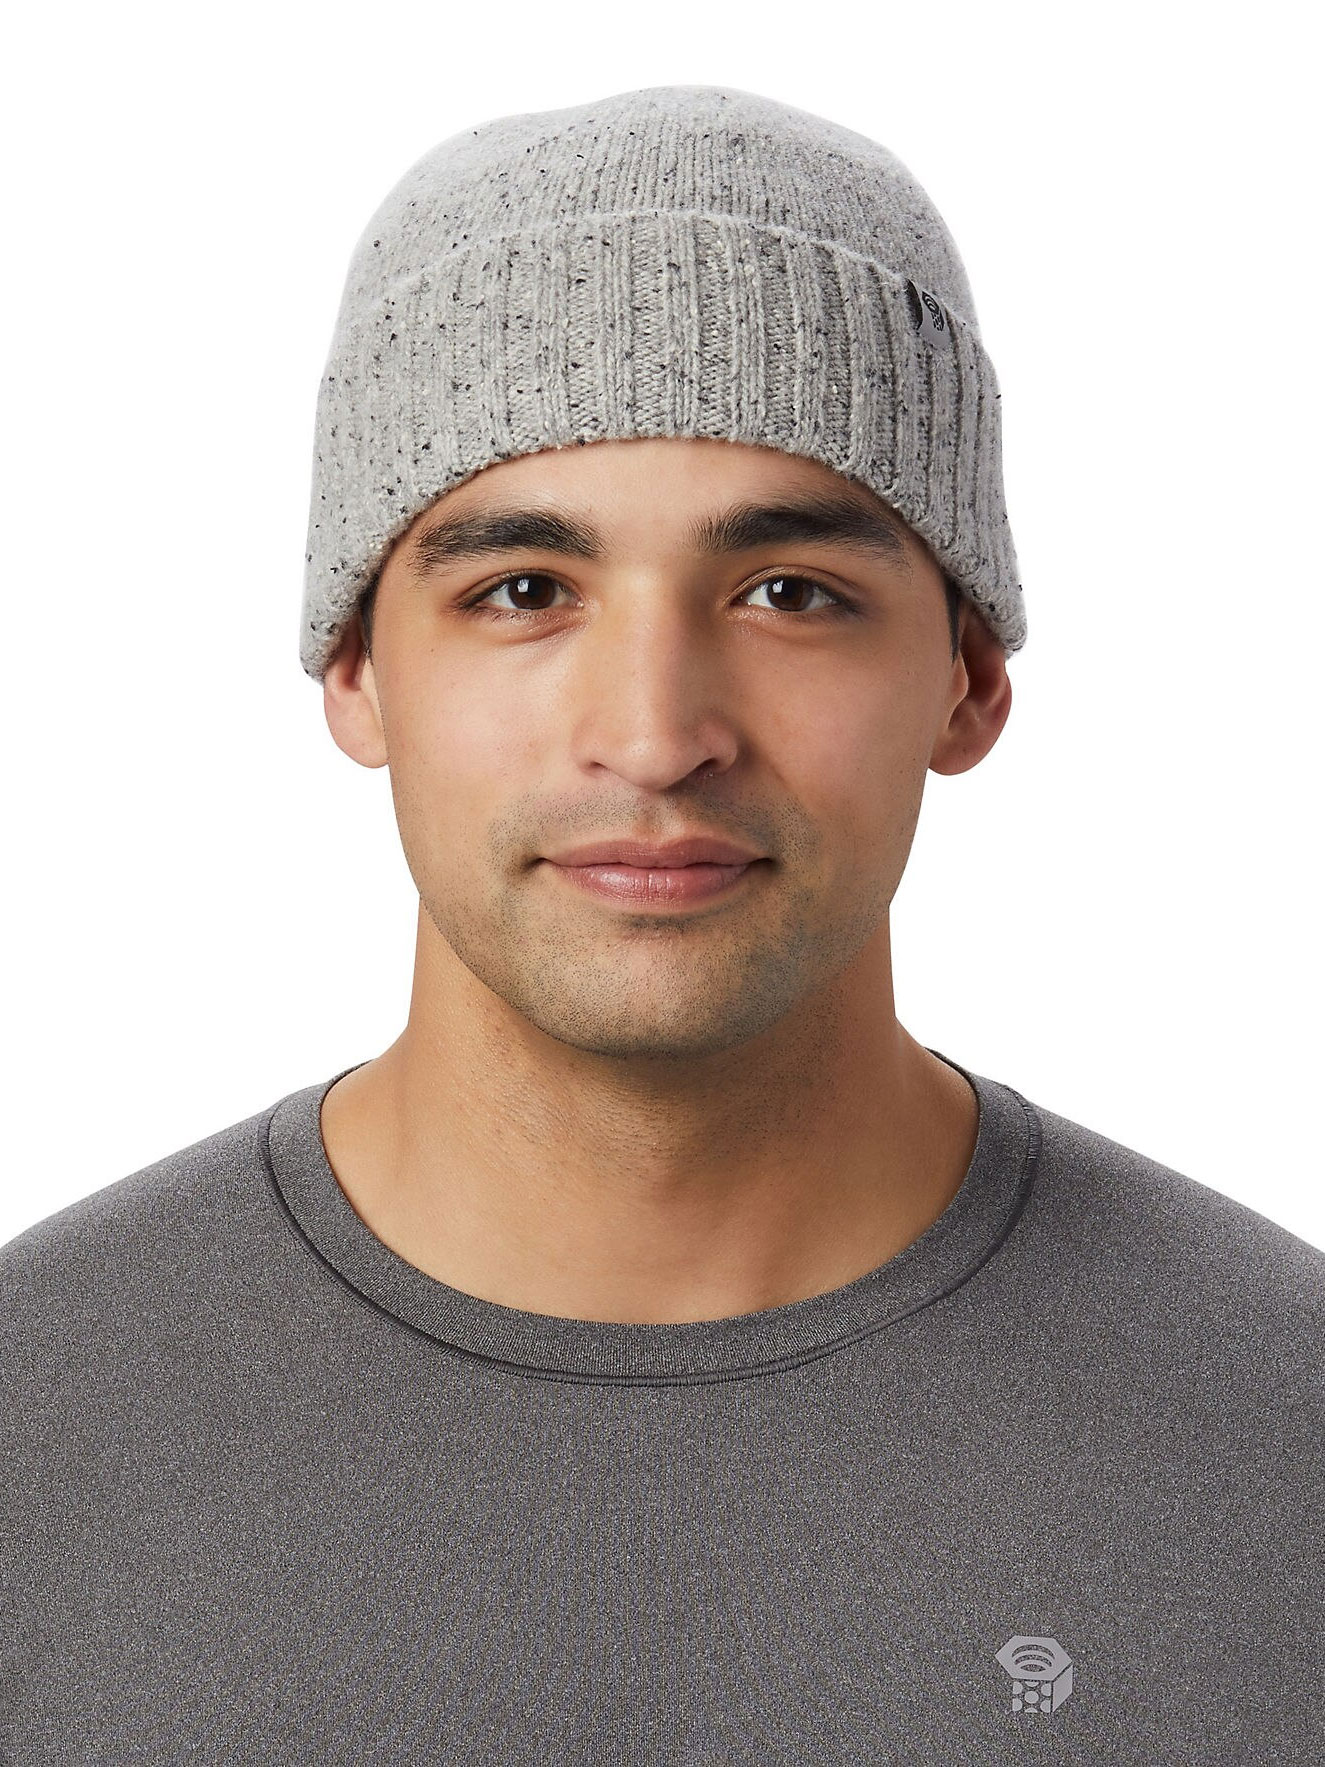 Details about  /Mountain Hardwear Unisex Climbers Classic Beanie